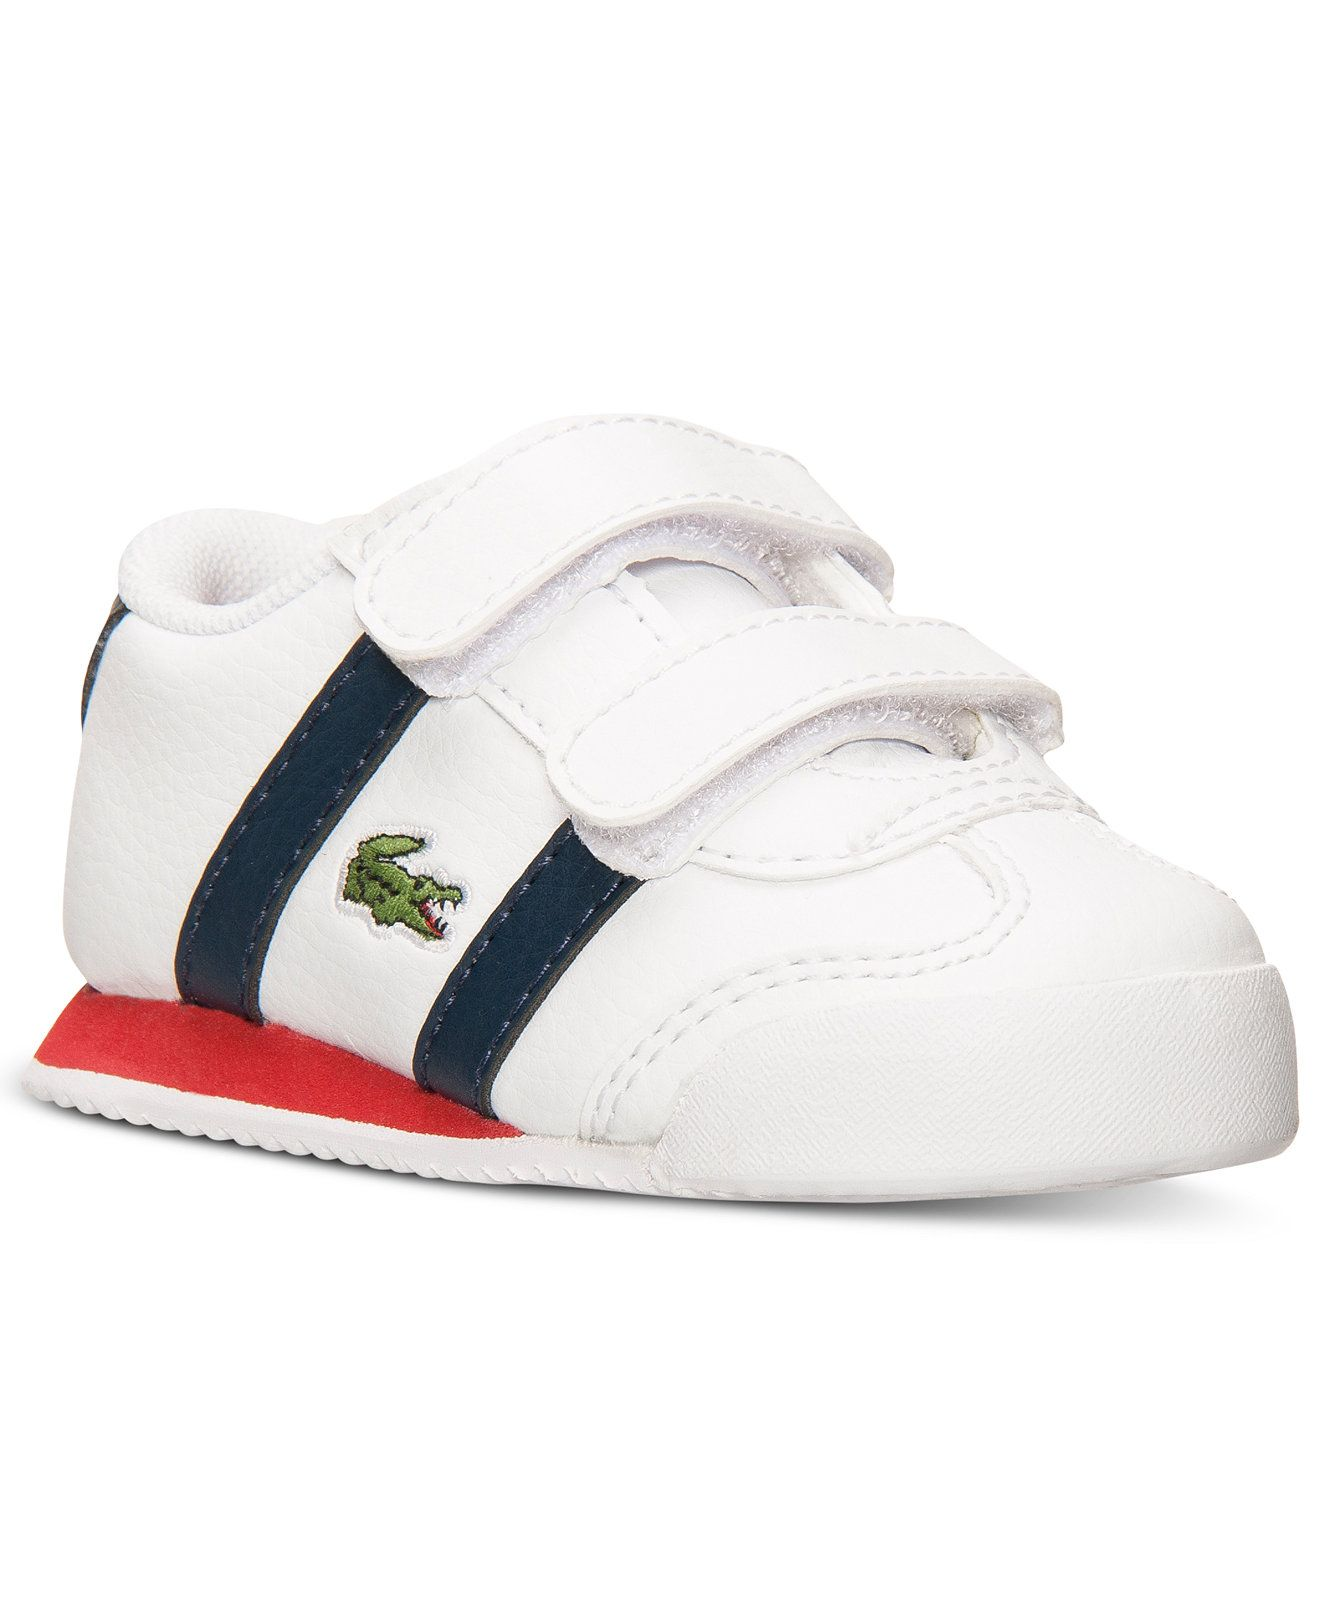 53219f09 Lacoste Toddler Boys' Tourelle CLC Casual Sneakers from Finish Line - Kids  Shoes - Macy's